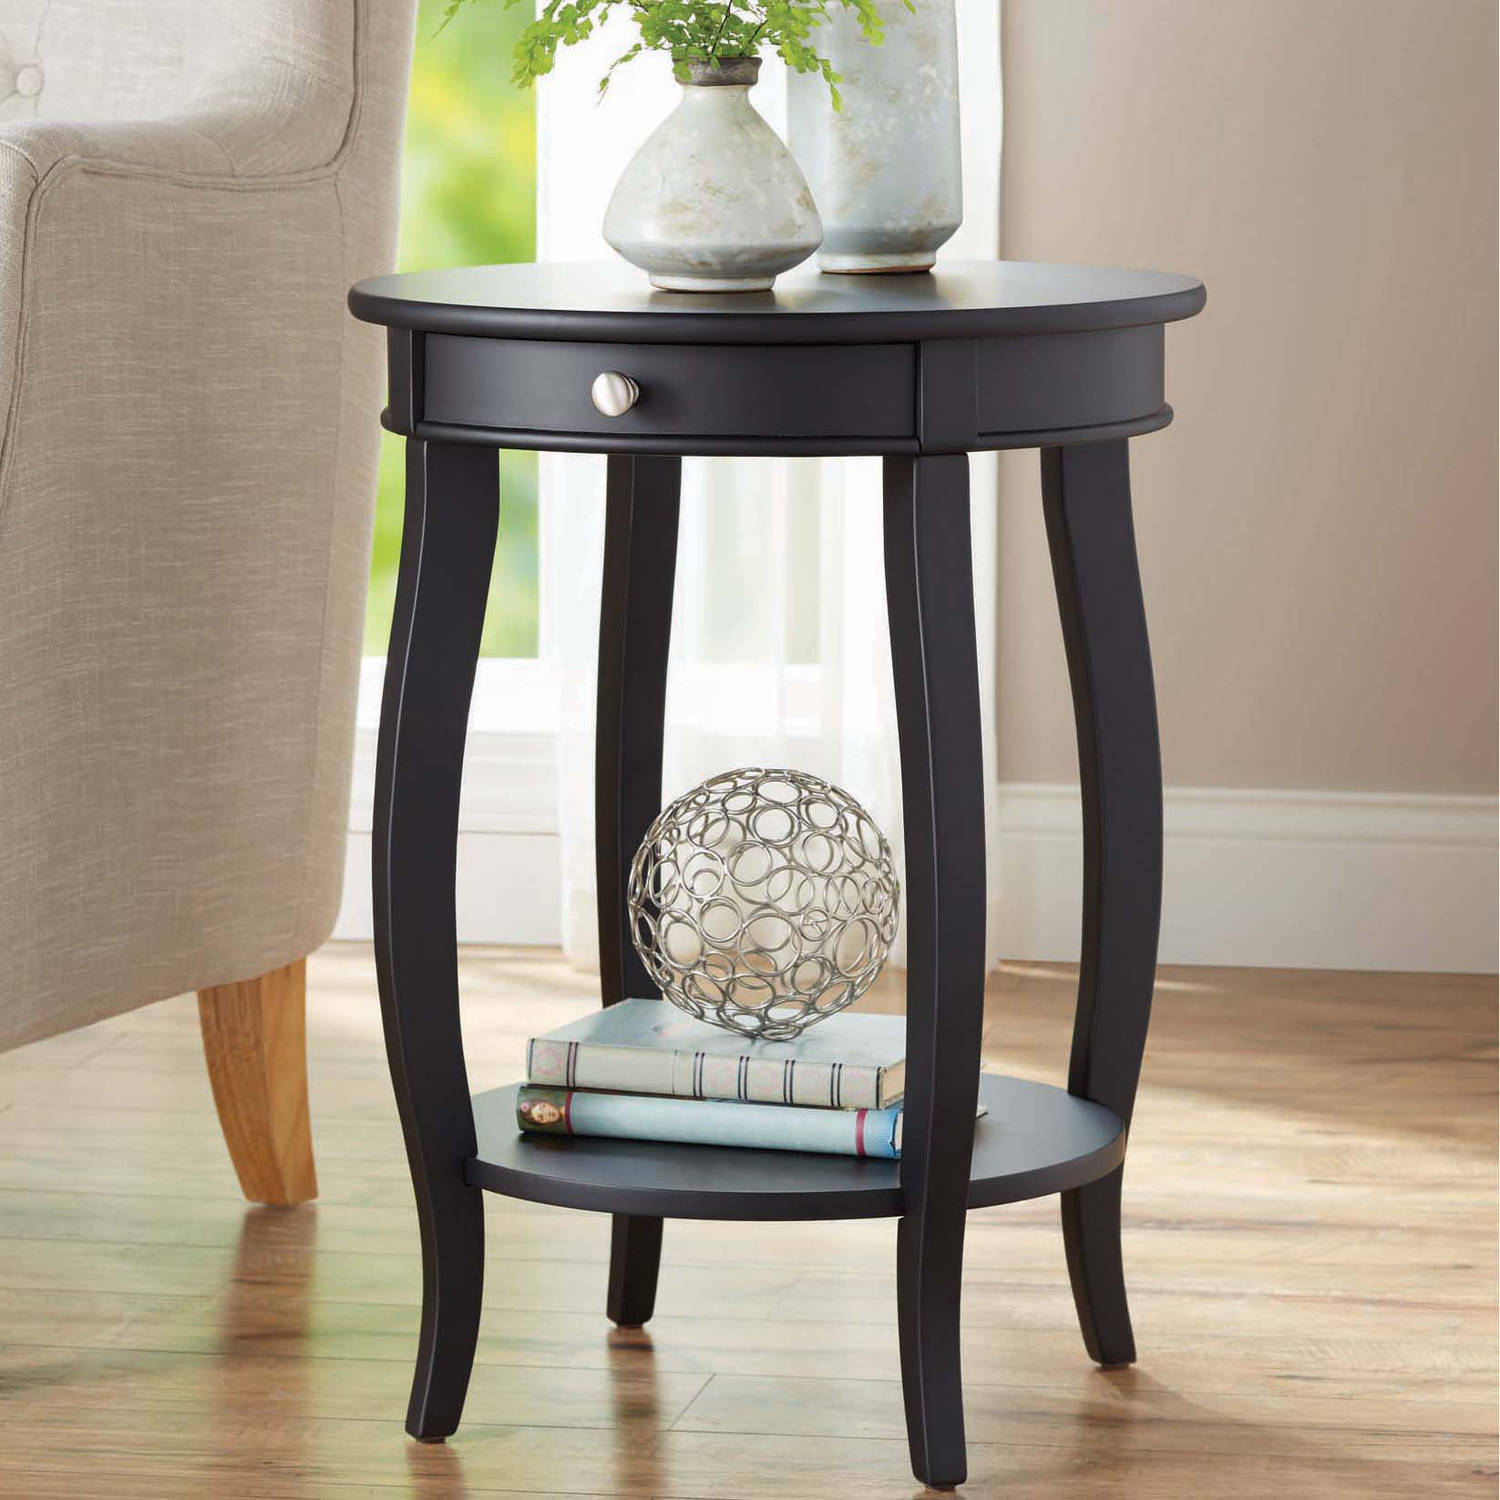 Better Homes Gardens Round Accent Table With Drawer Multiple Colors